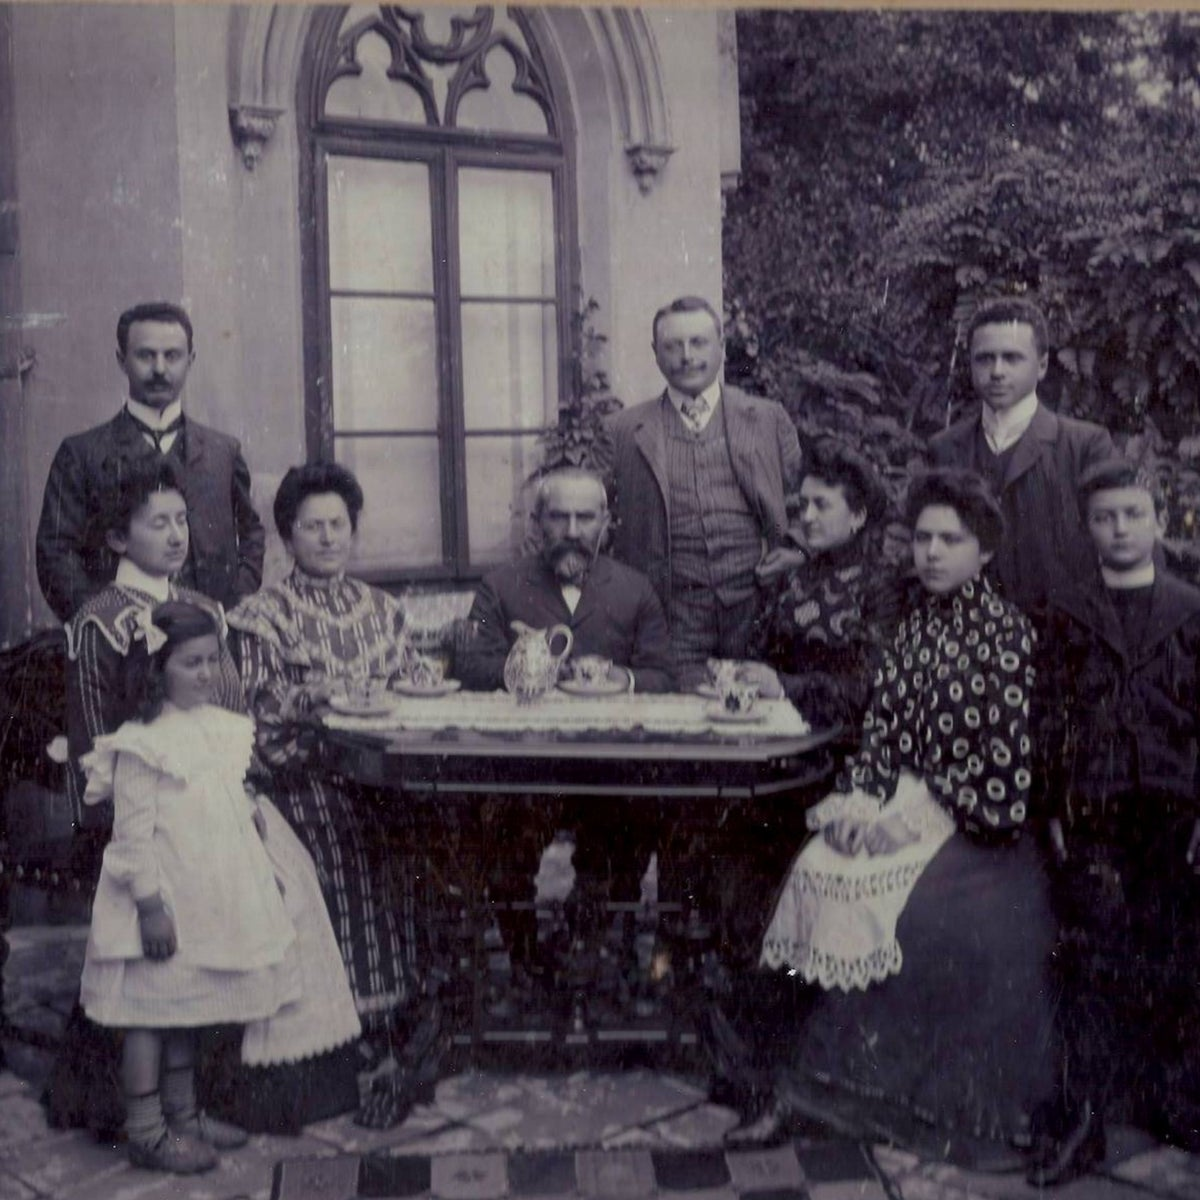 Izak Goldman, Blanka's grandfather, in the center at the Goldman Family home in Tarnów in an undated photograph. The house is now called Wedding Palace. The rest of the people are unknown.